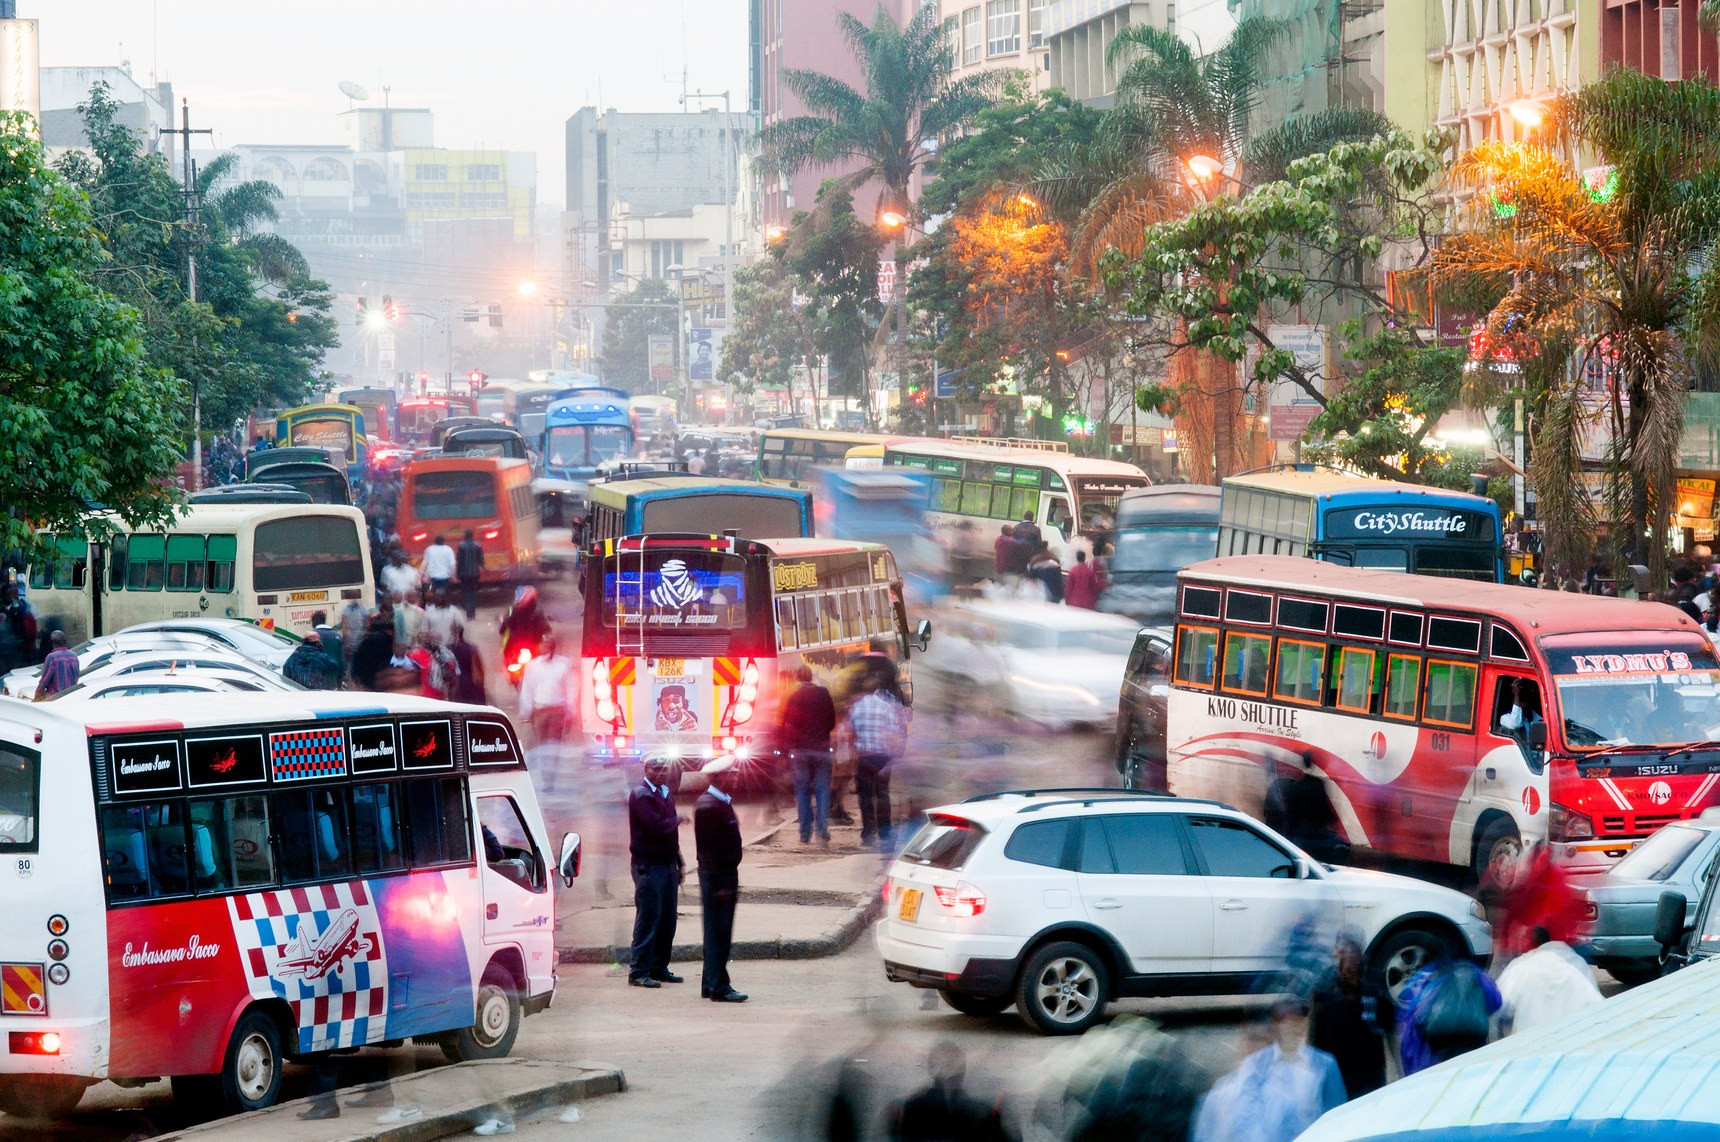 Driving in Nairobi is a test of will and one of many causes of high blood pressure